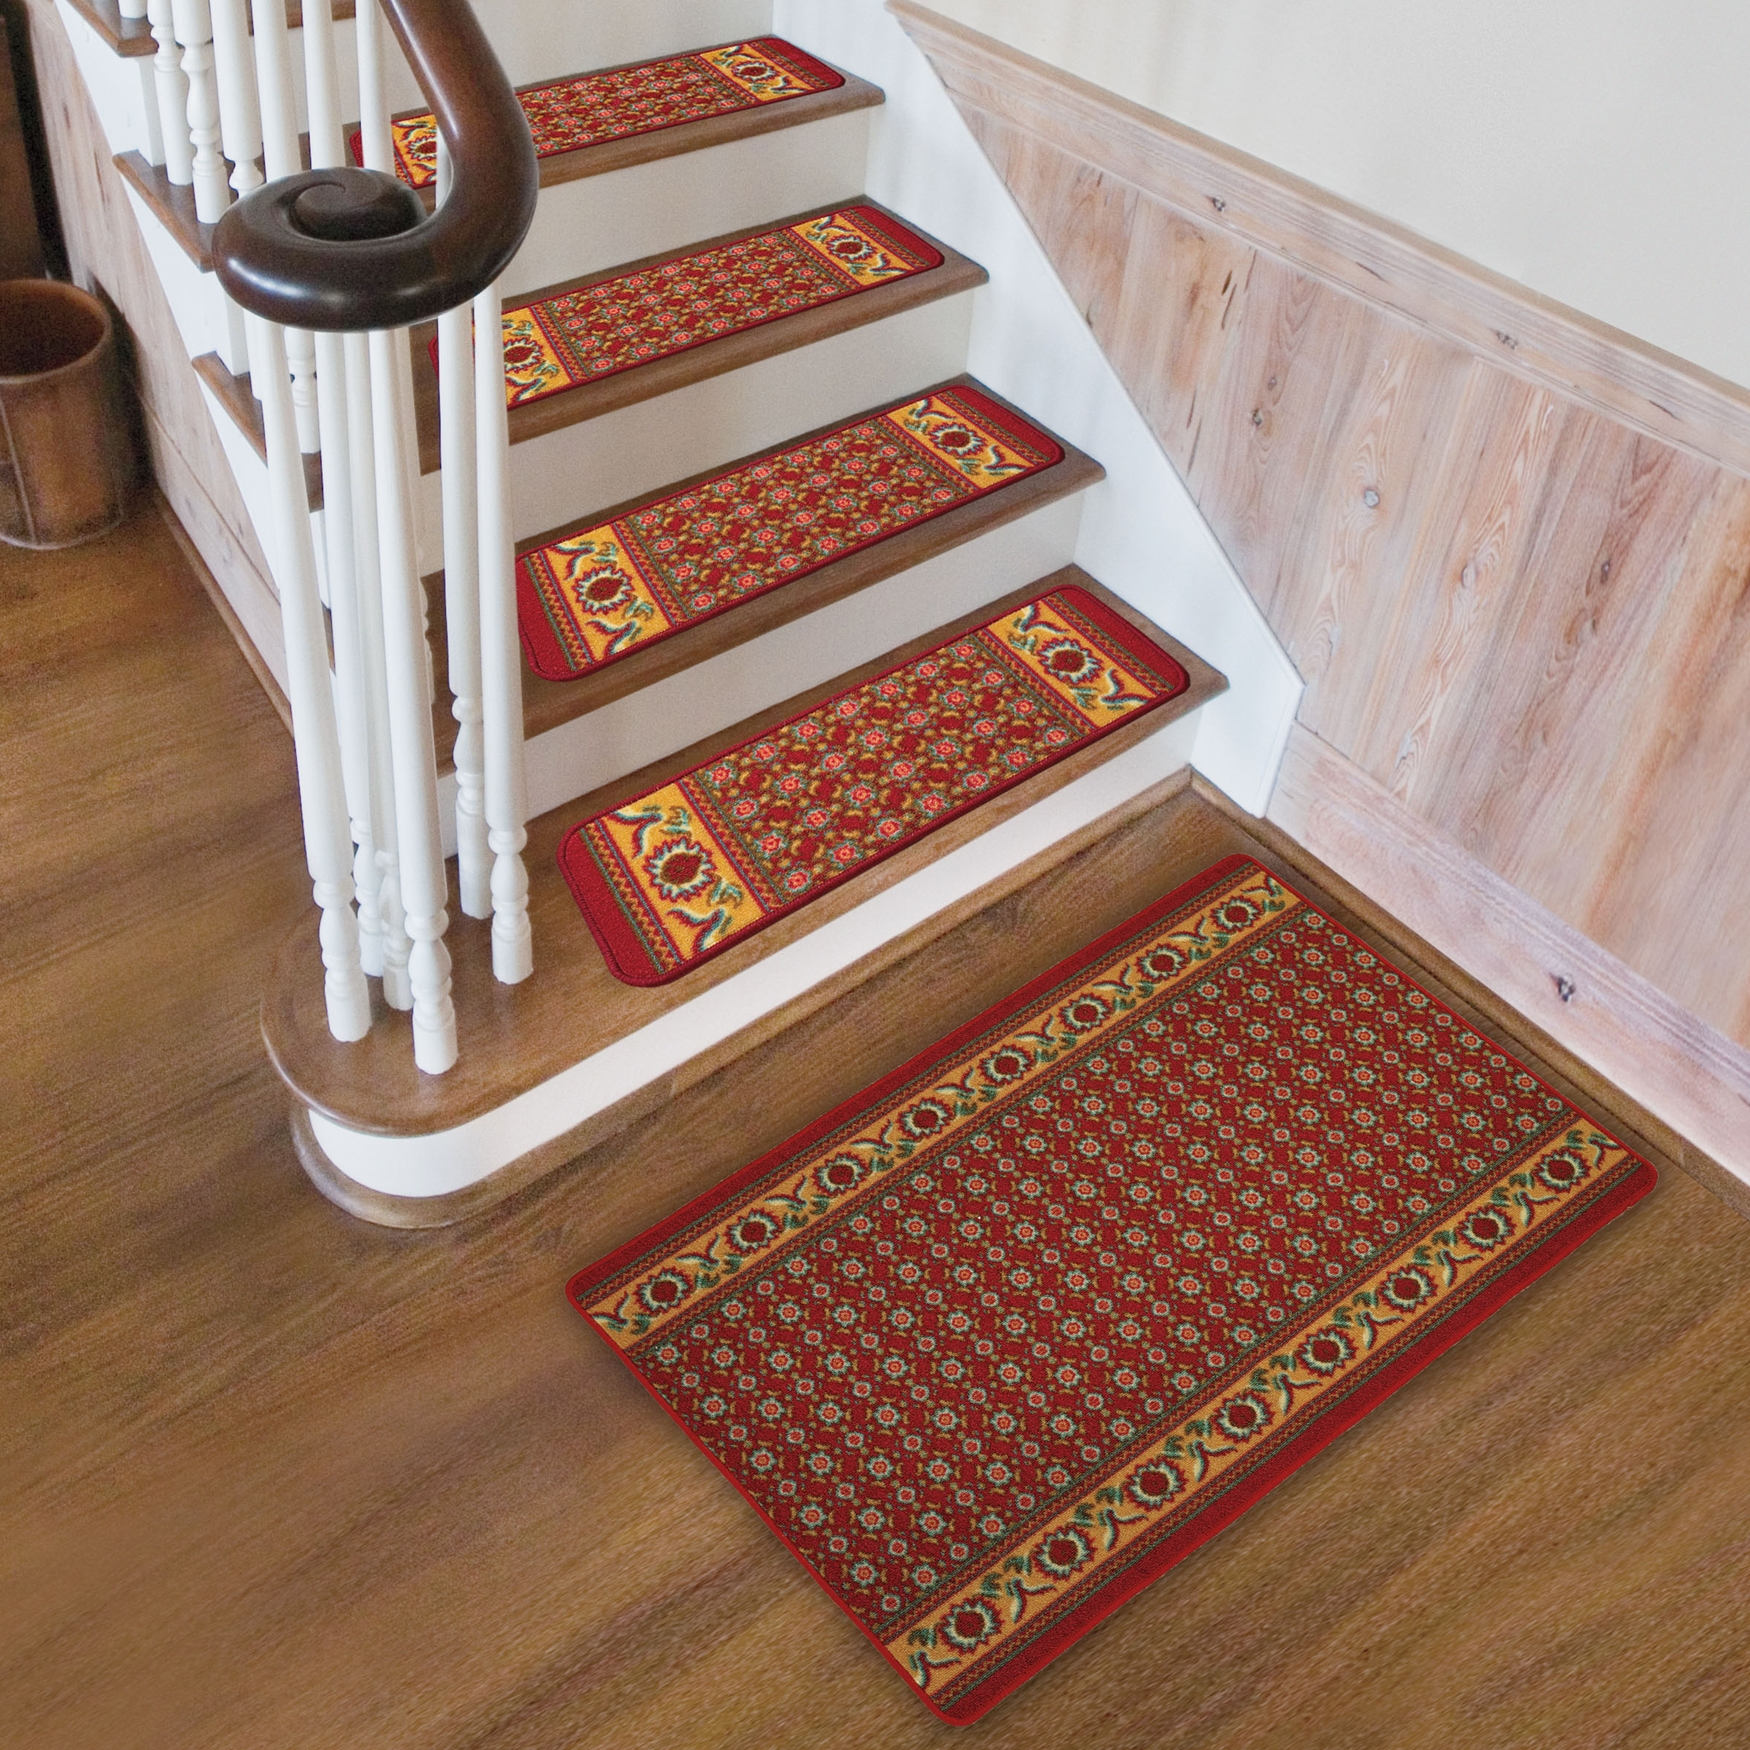 Rugs Carpet Rugs For Stair Steps Carpet Stair Treads With Regard To Stair Tread Carpet Rugs (#19 of 20)